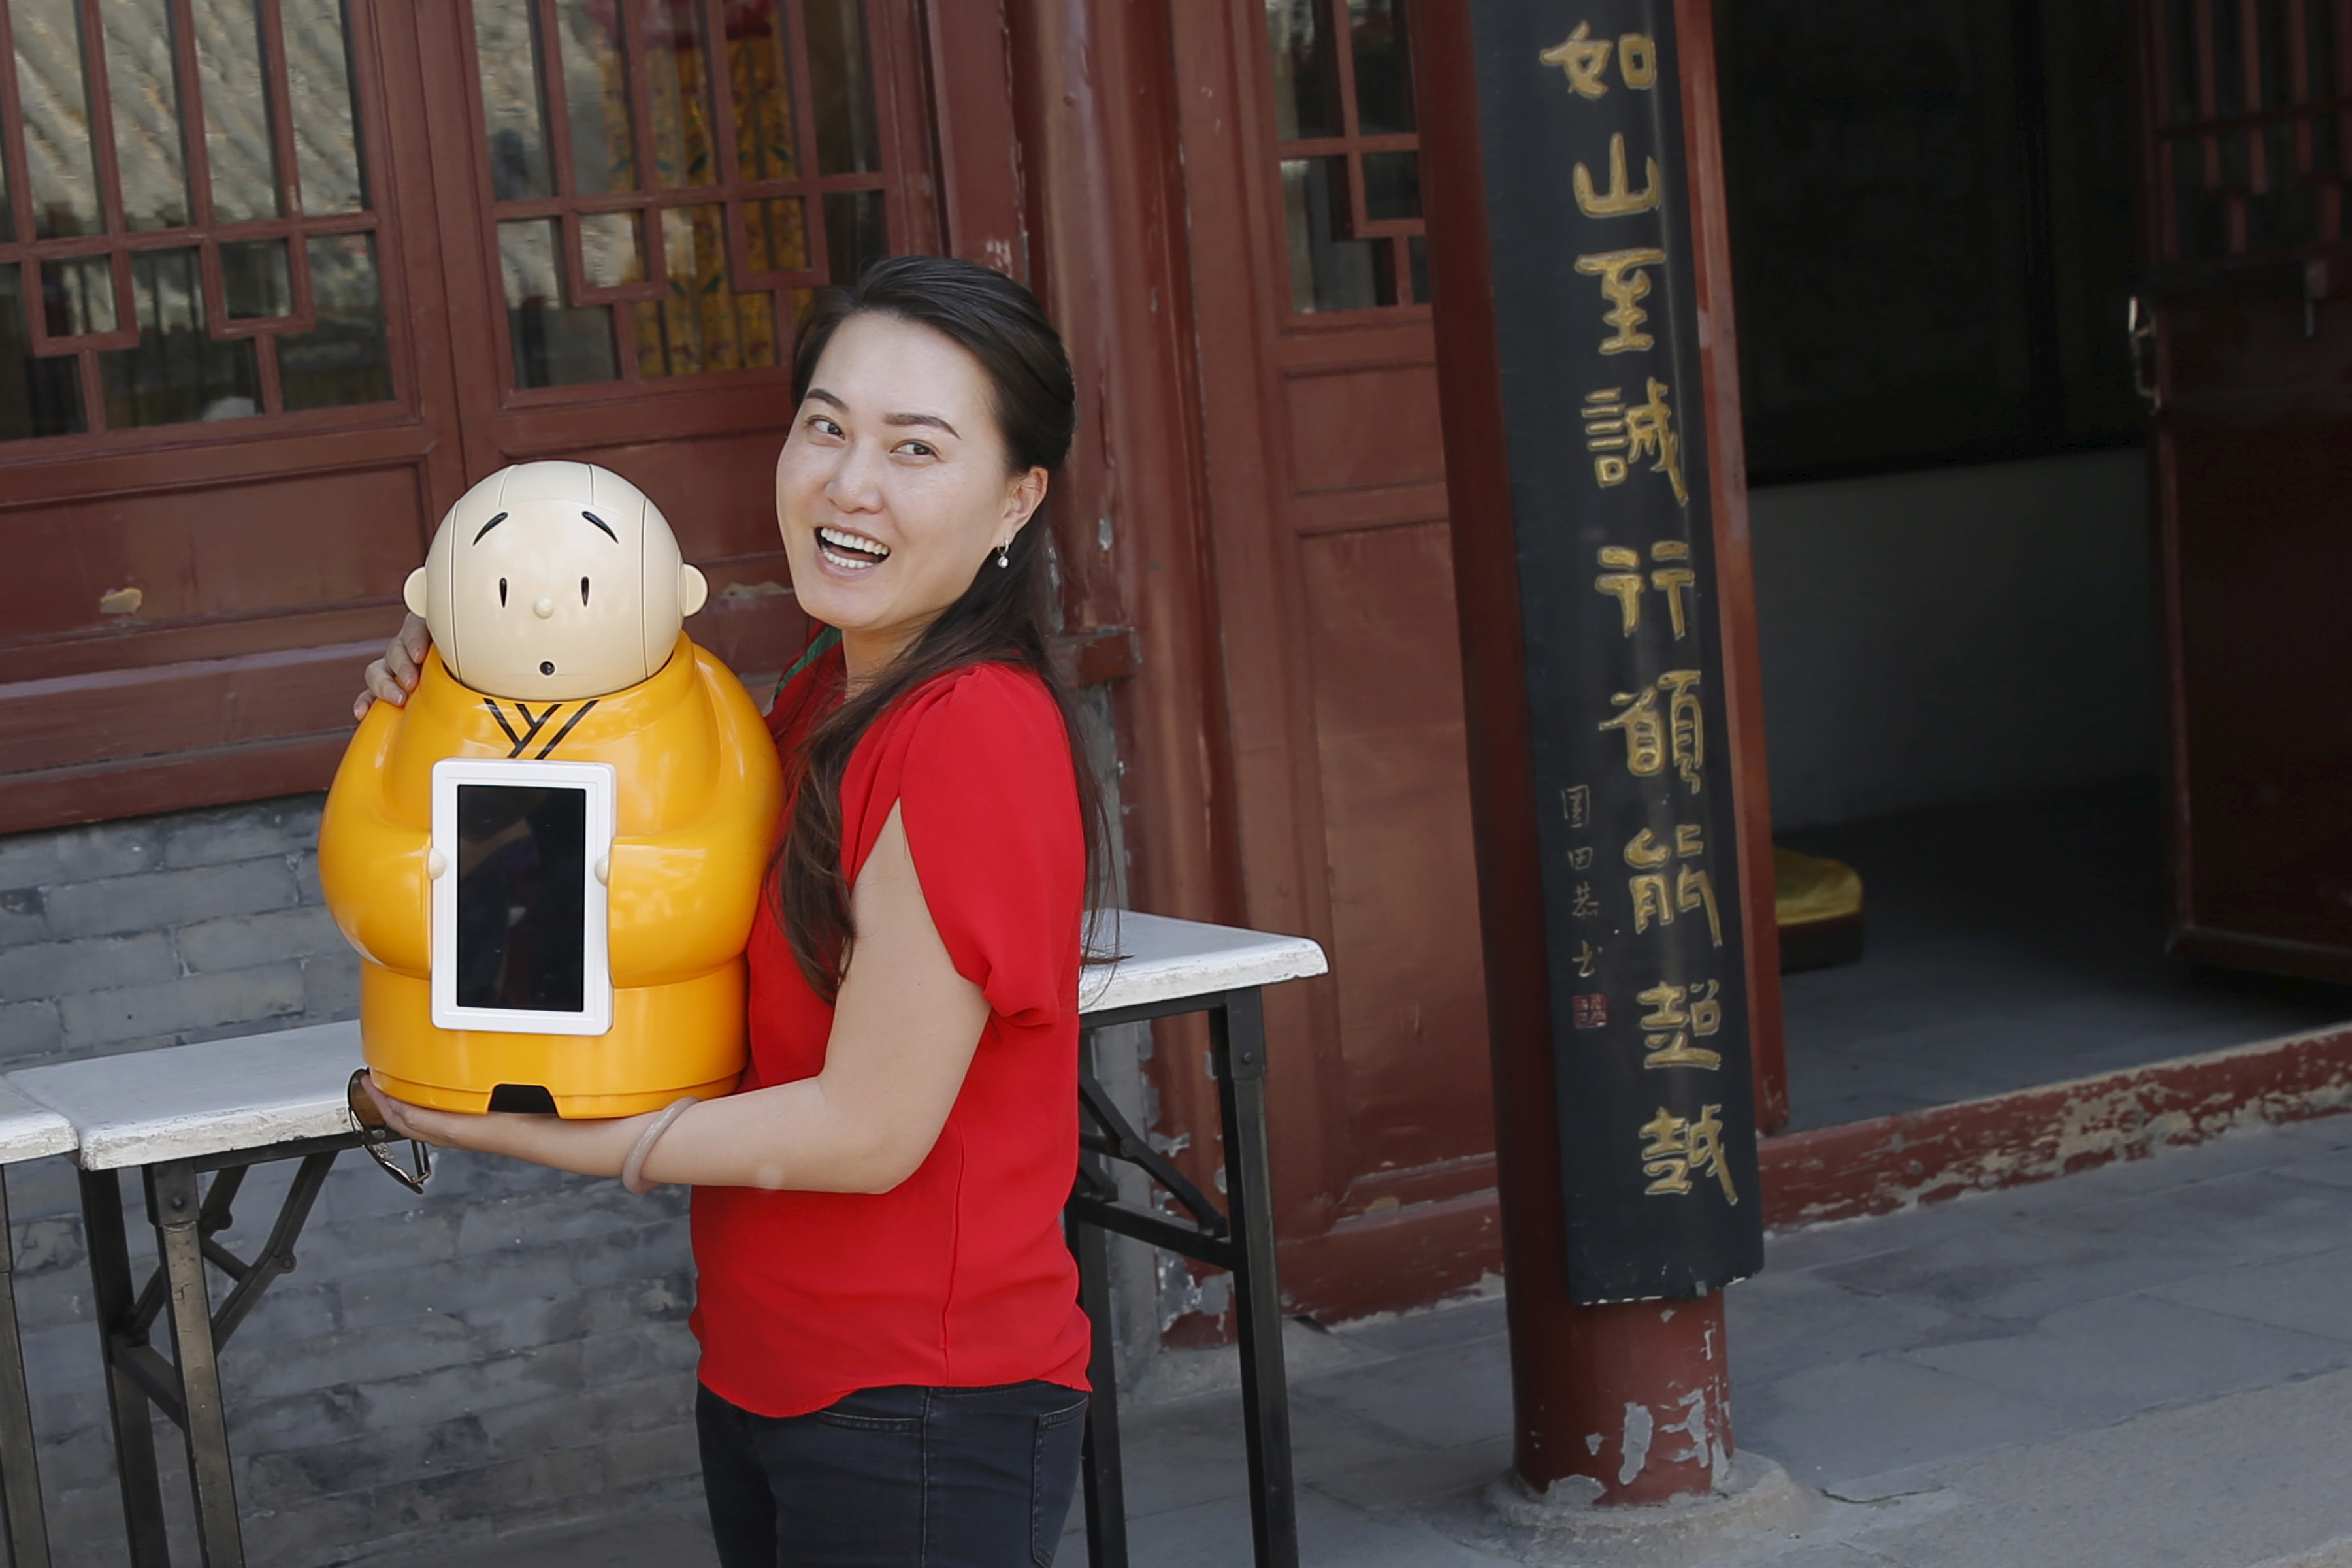 A visitor smiles as she holds Robot Xian'er which is placed in the main building of Longquan Buddhist temple for photograph by the temple's staff, on the outskirts of Beijing, April 20, 2016. REUTERS/Kim Kyung-Hoon